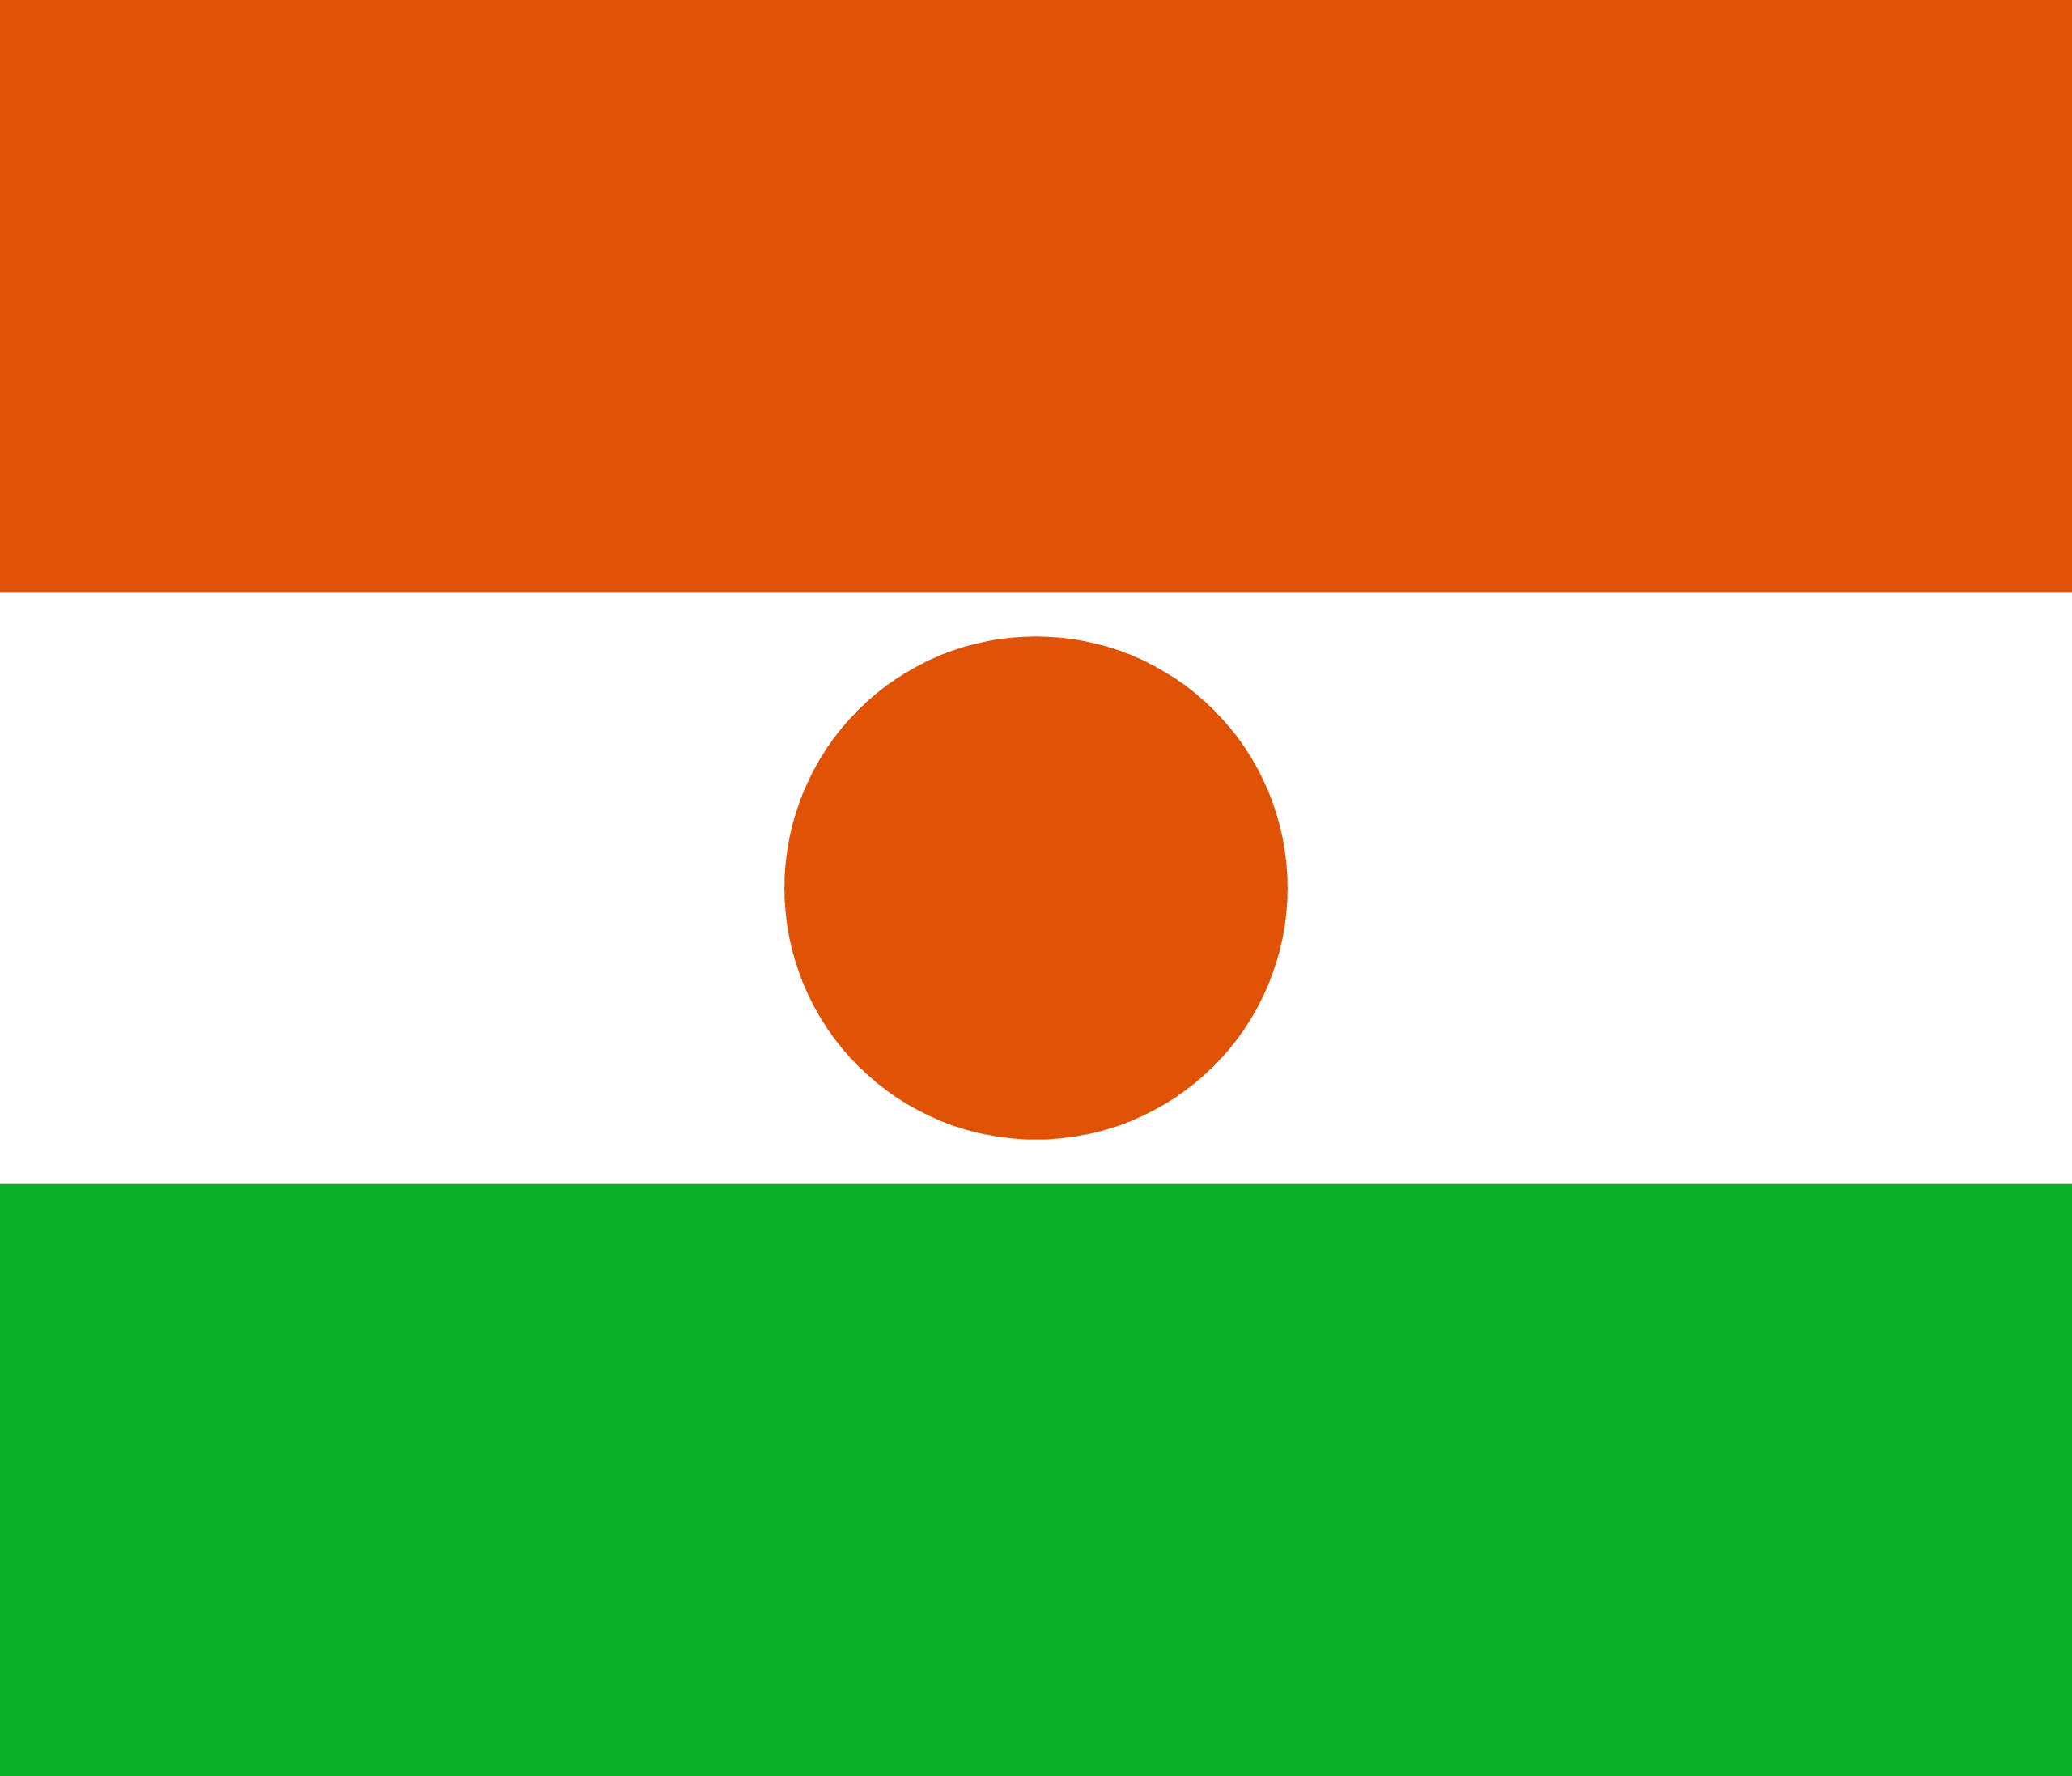 Niger | Flags of countries